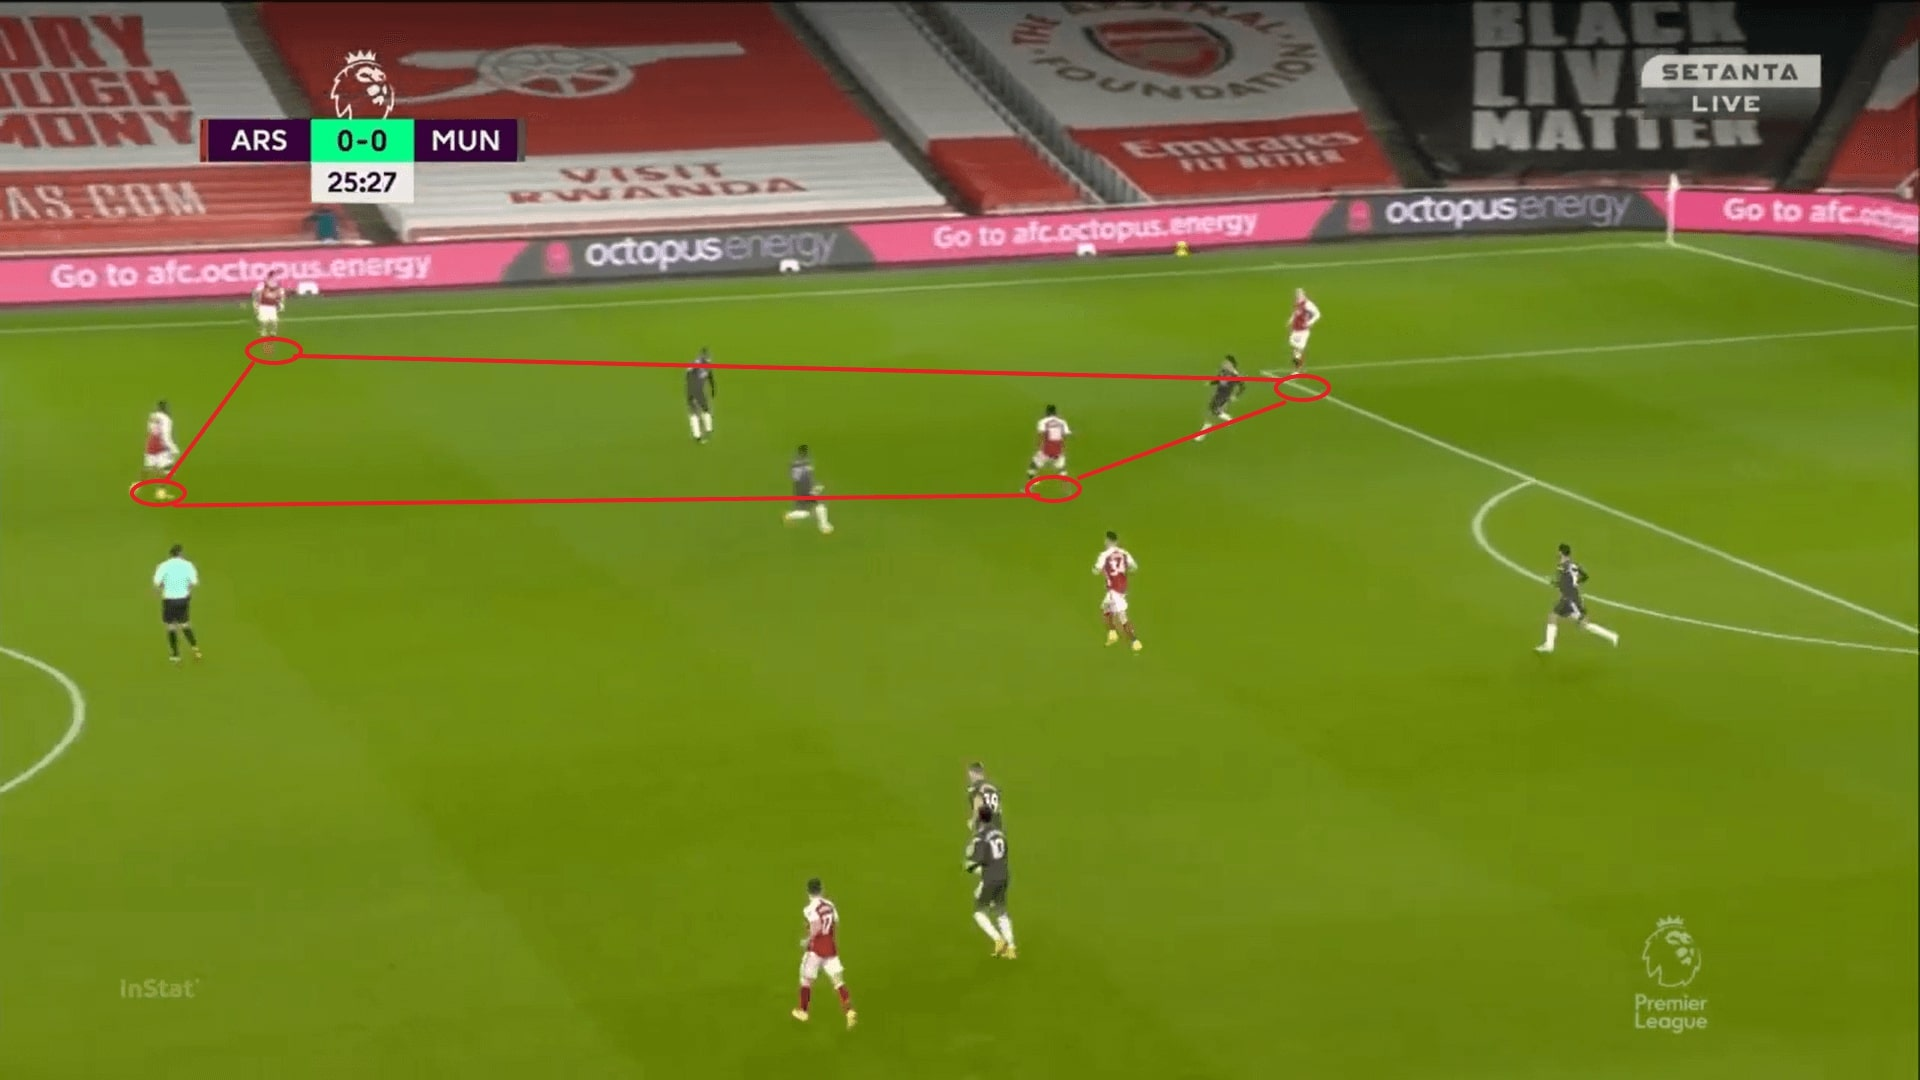 Premier League 2020/21: Arsenal vs Manchester United - tactical analysis